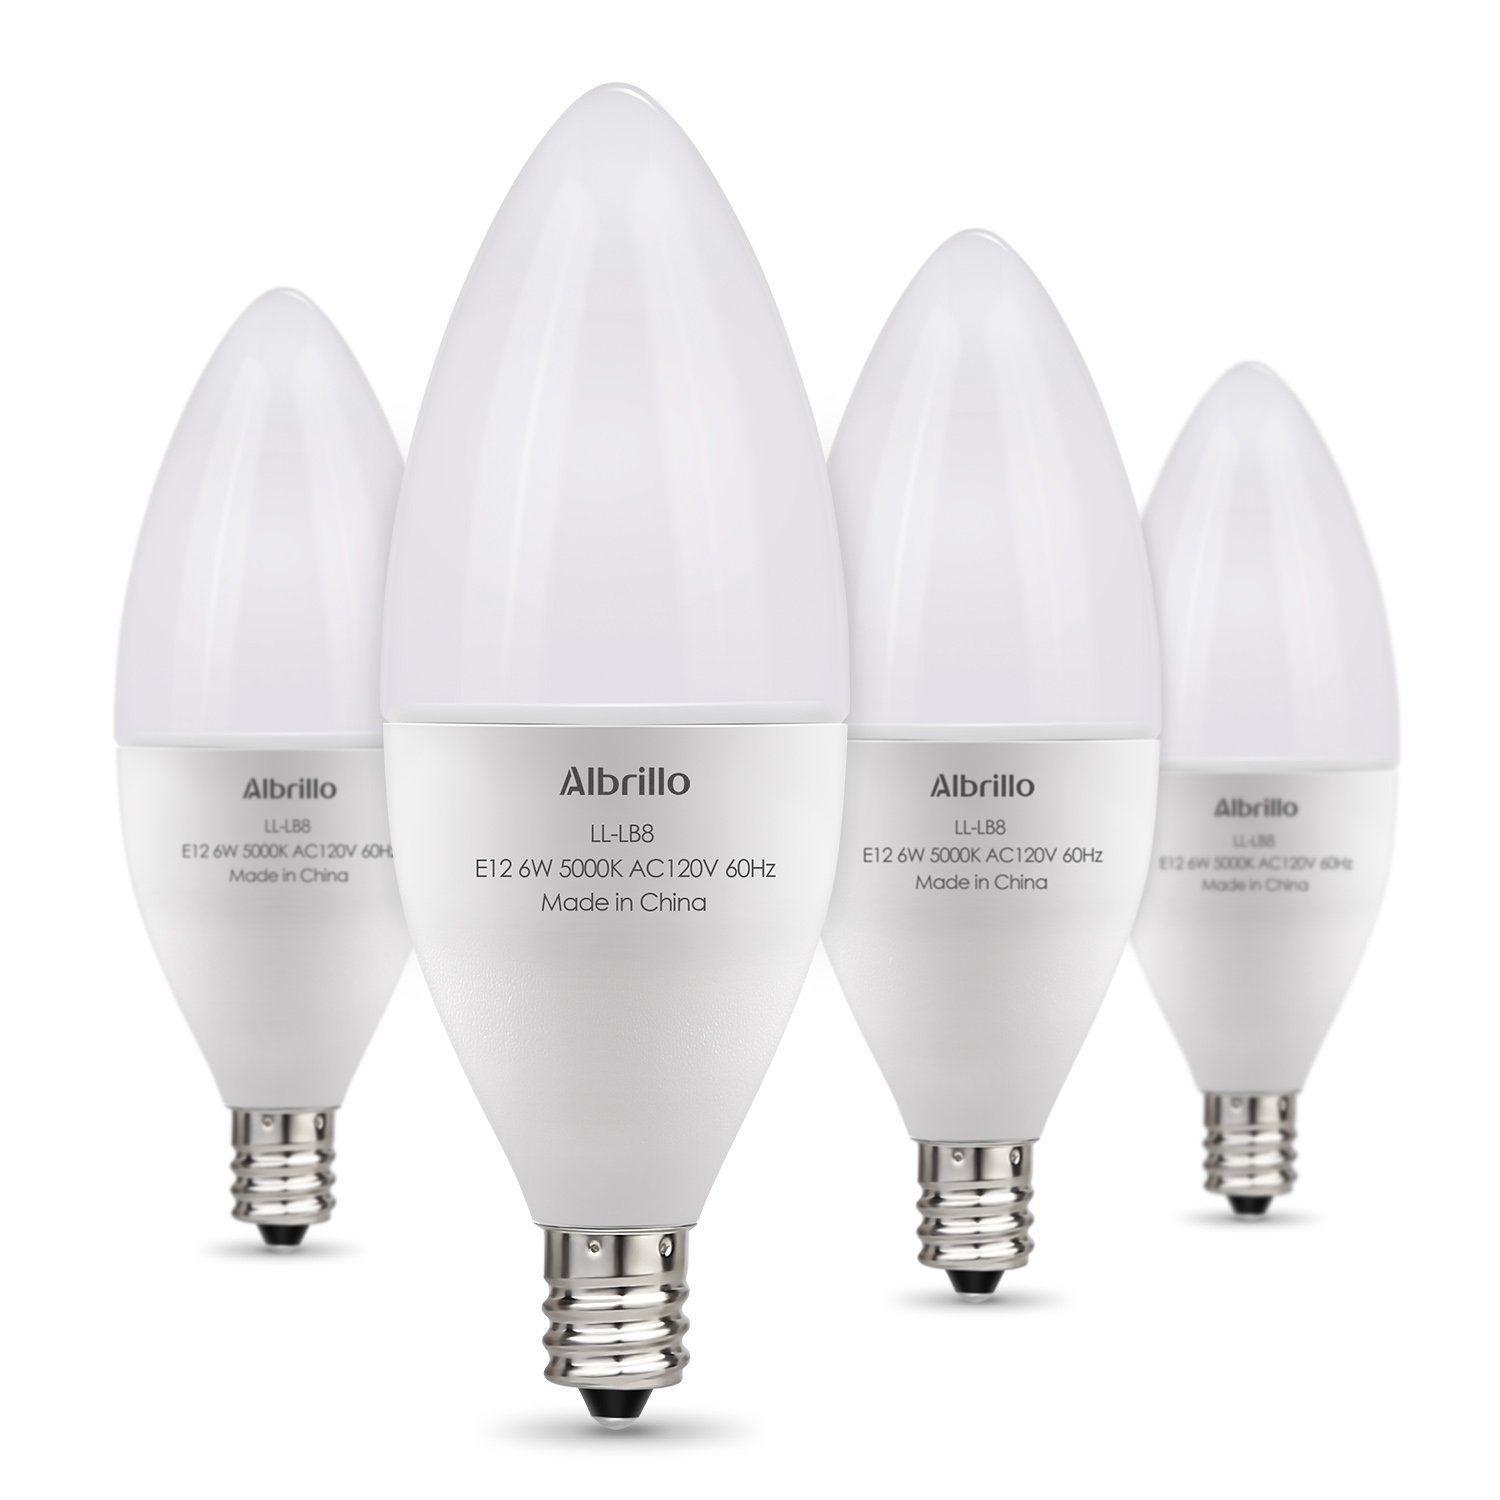 Albrillo E12 Bulb Candelabra LED Bulbs, 60 Watt Equivalent, Daylight White 5000K LED Chandelier Bulbs, Candelabra Base, Non-Dimmable LED Lamp, 4 Pack